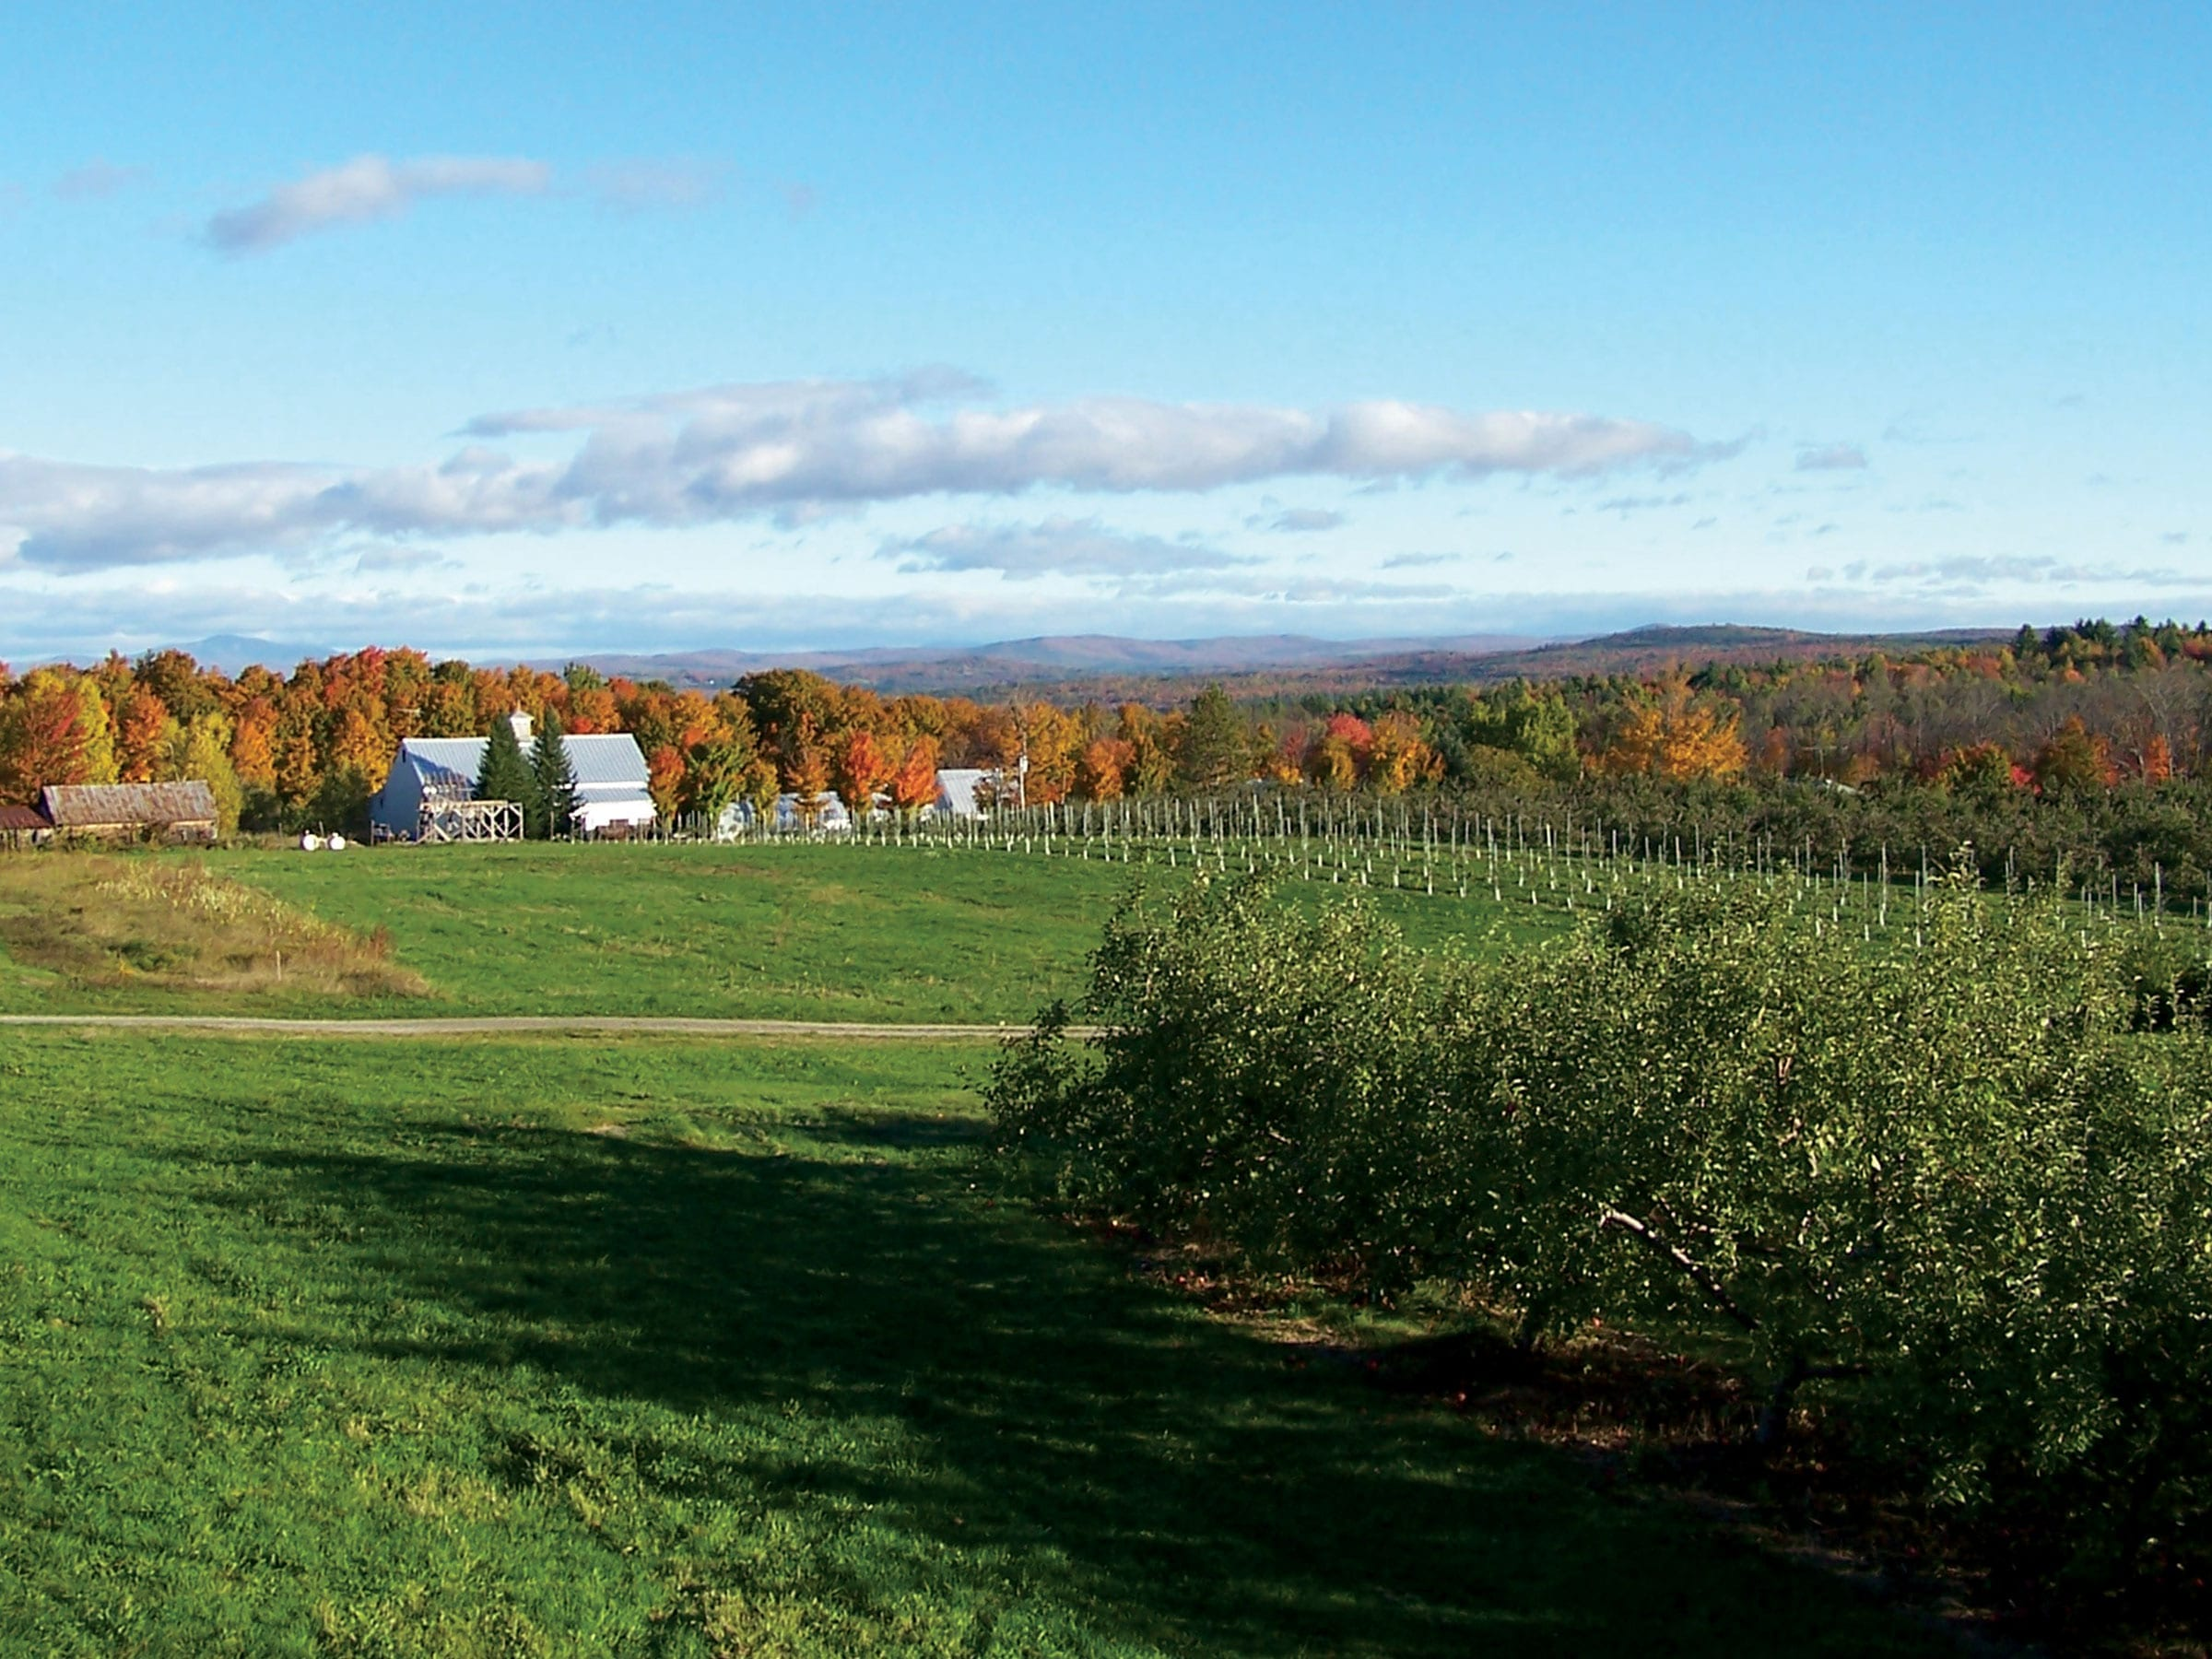 Small town charm, Orchard in the town of Madison, maine's kennebec valley